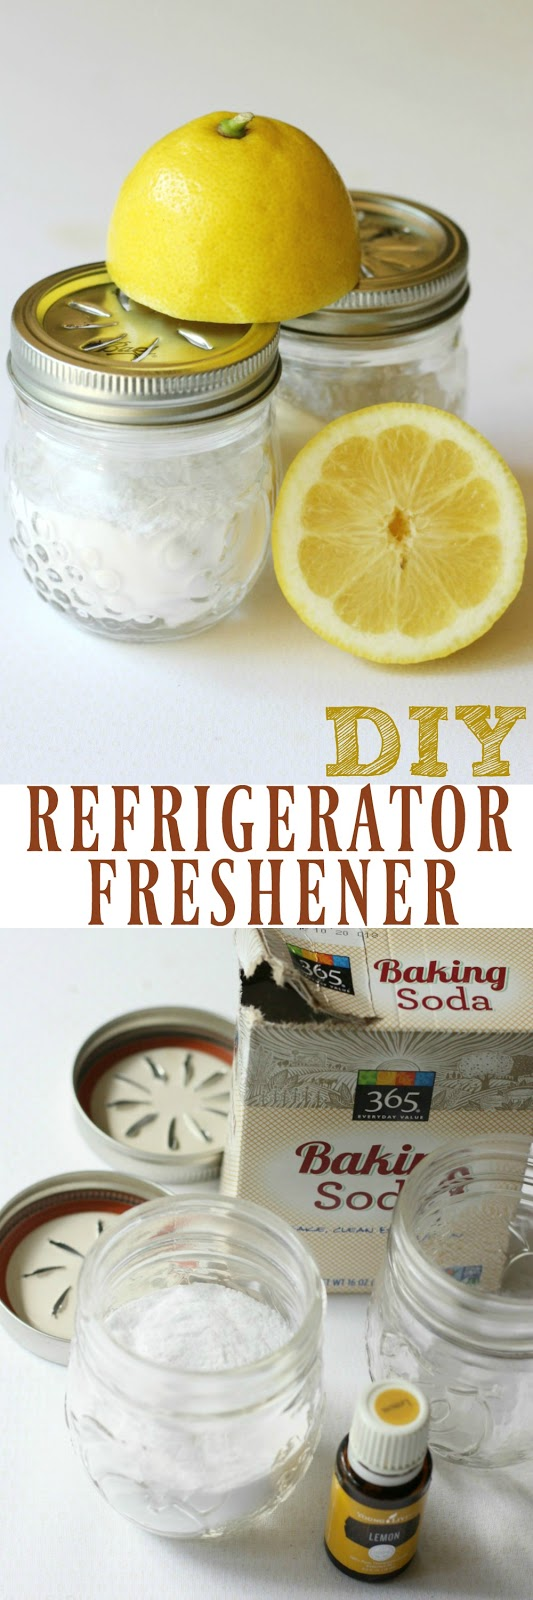 Fridge freshener, DIY kitchen cleaners, nontoxic air freshener, nontoxic kitchen cleaners, essential oils in the kitchen